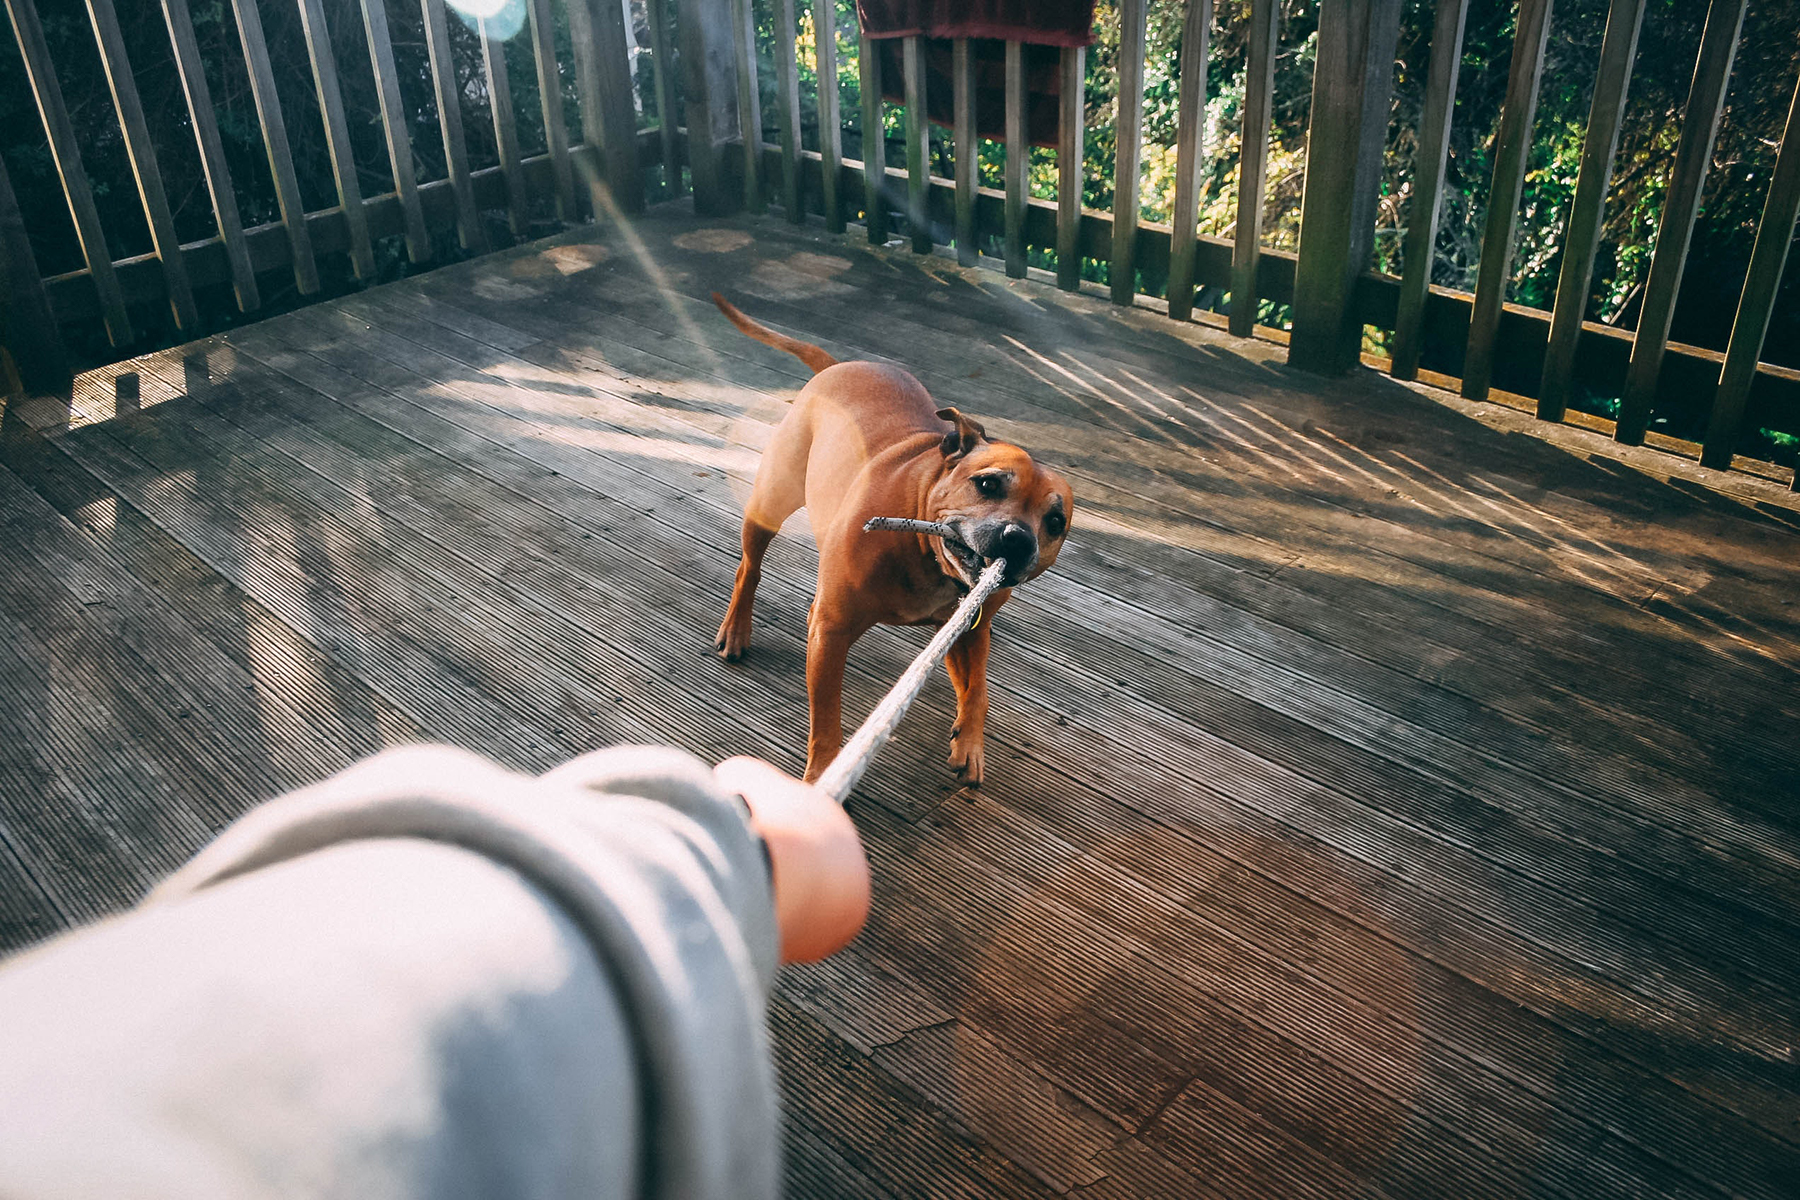 Dog pulls on rope on a deck surrounded by woods